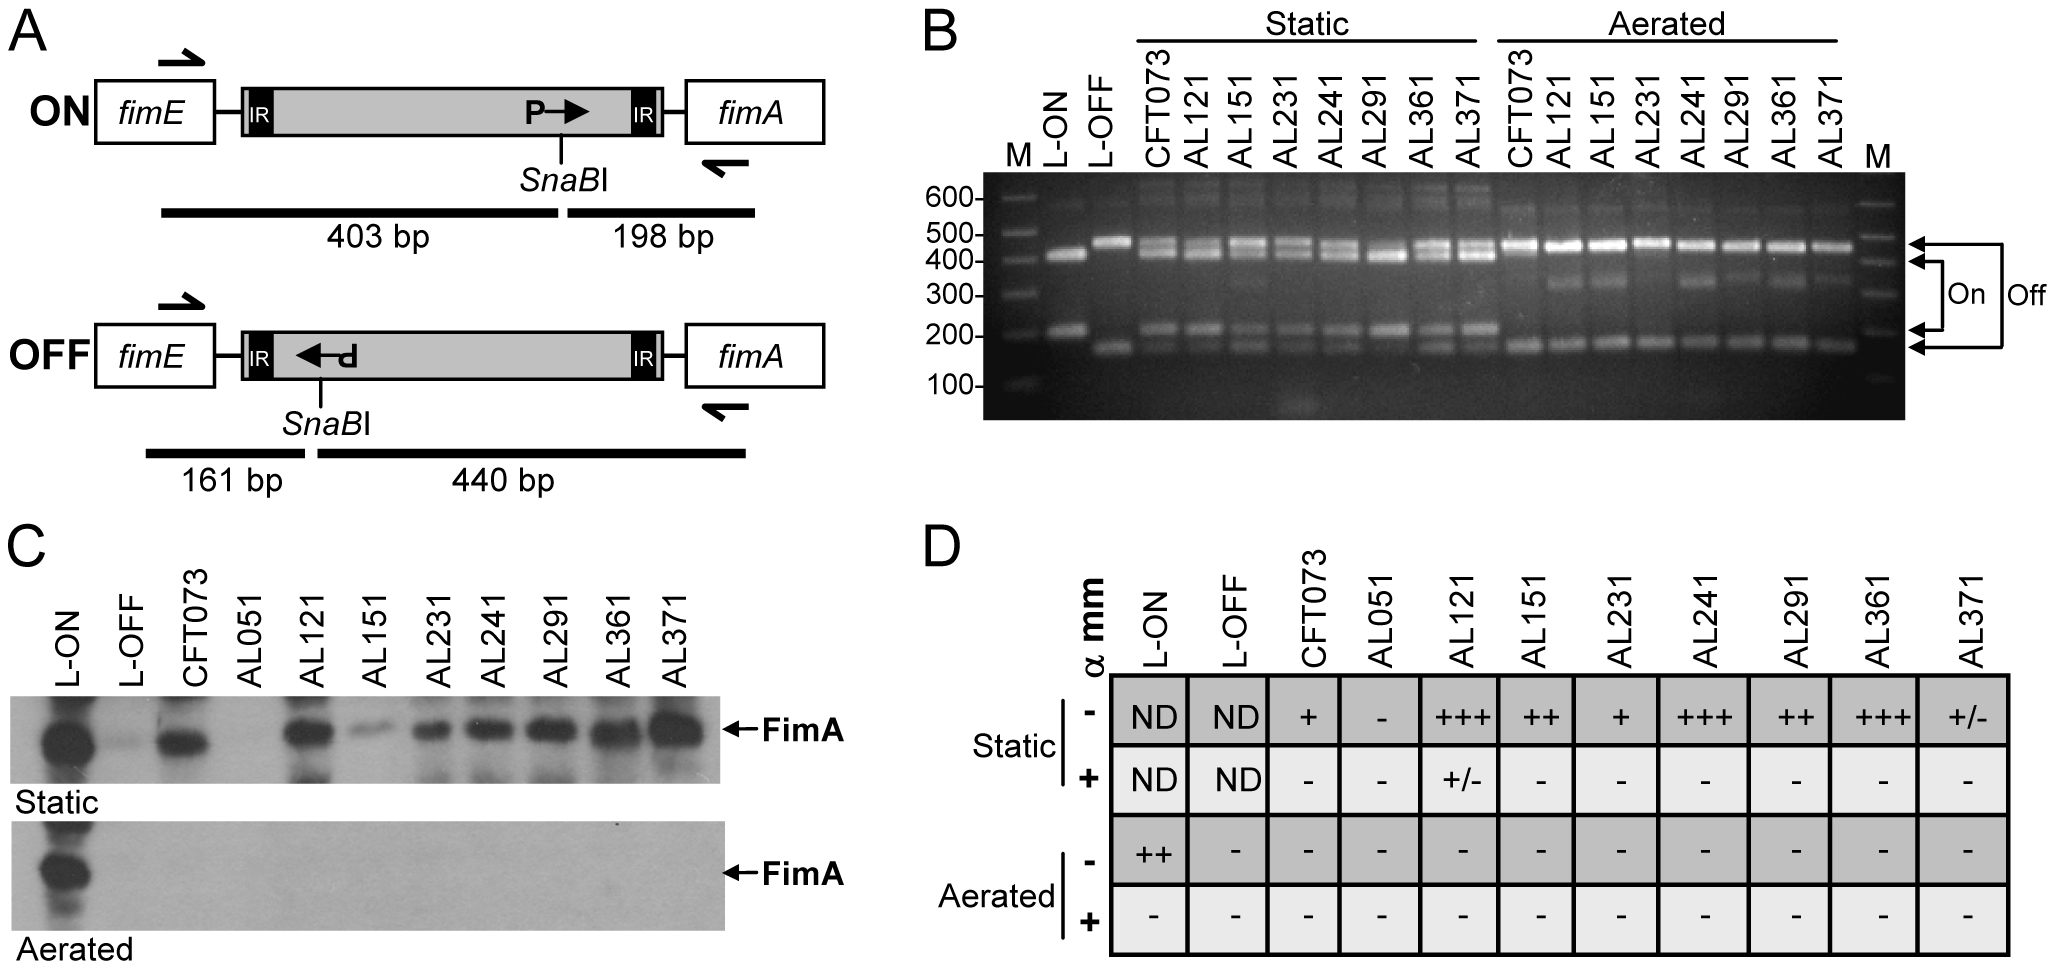 <i>In vitro</i> expression of type 1 fimbriae by clinical <i>E. coli</i> isolates.